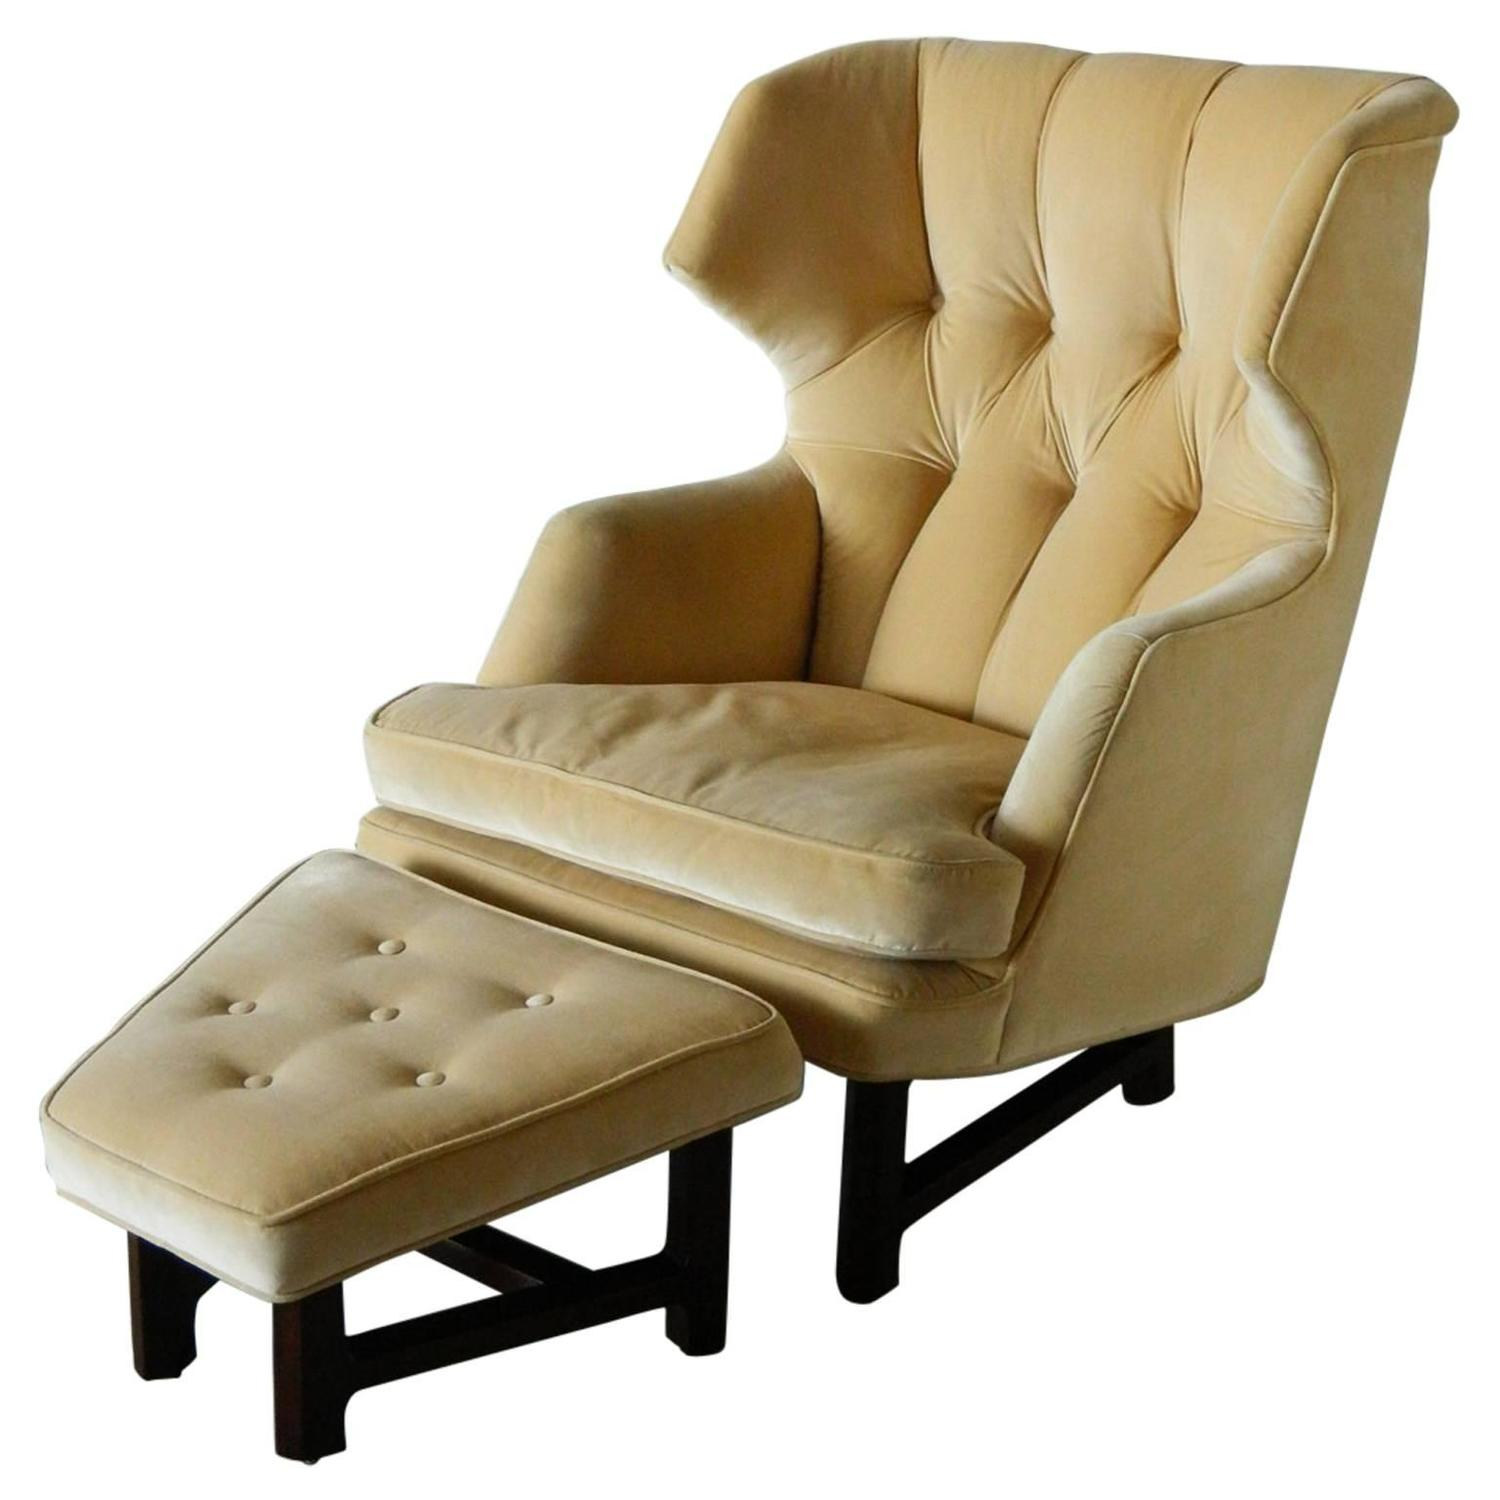 Wing chair with ottoman - Wing Chair With Ottoman 2